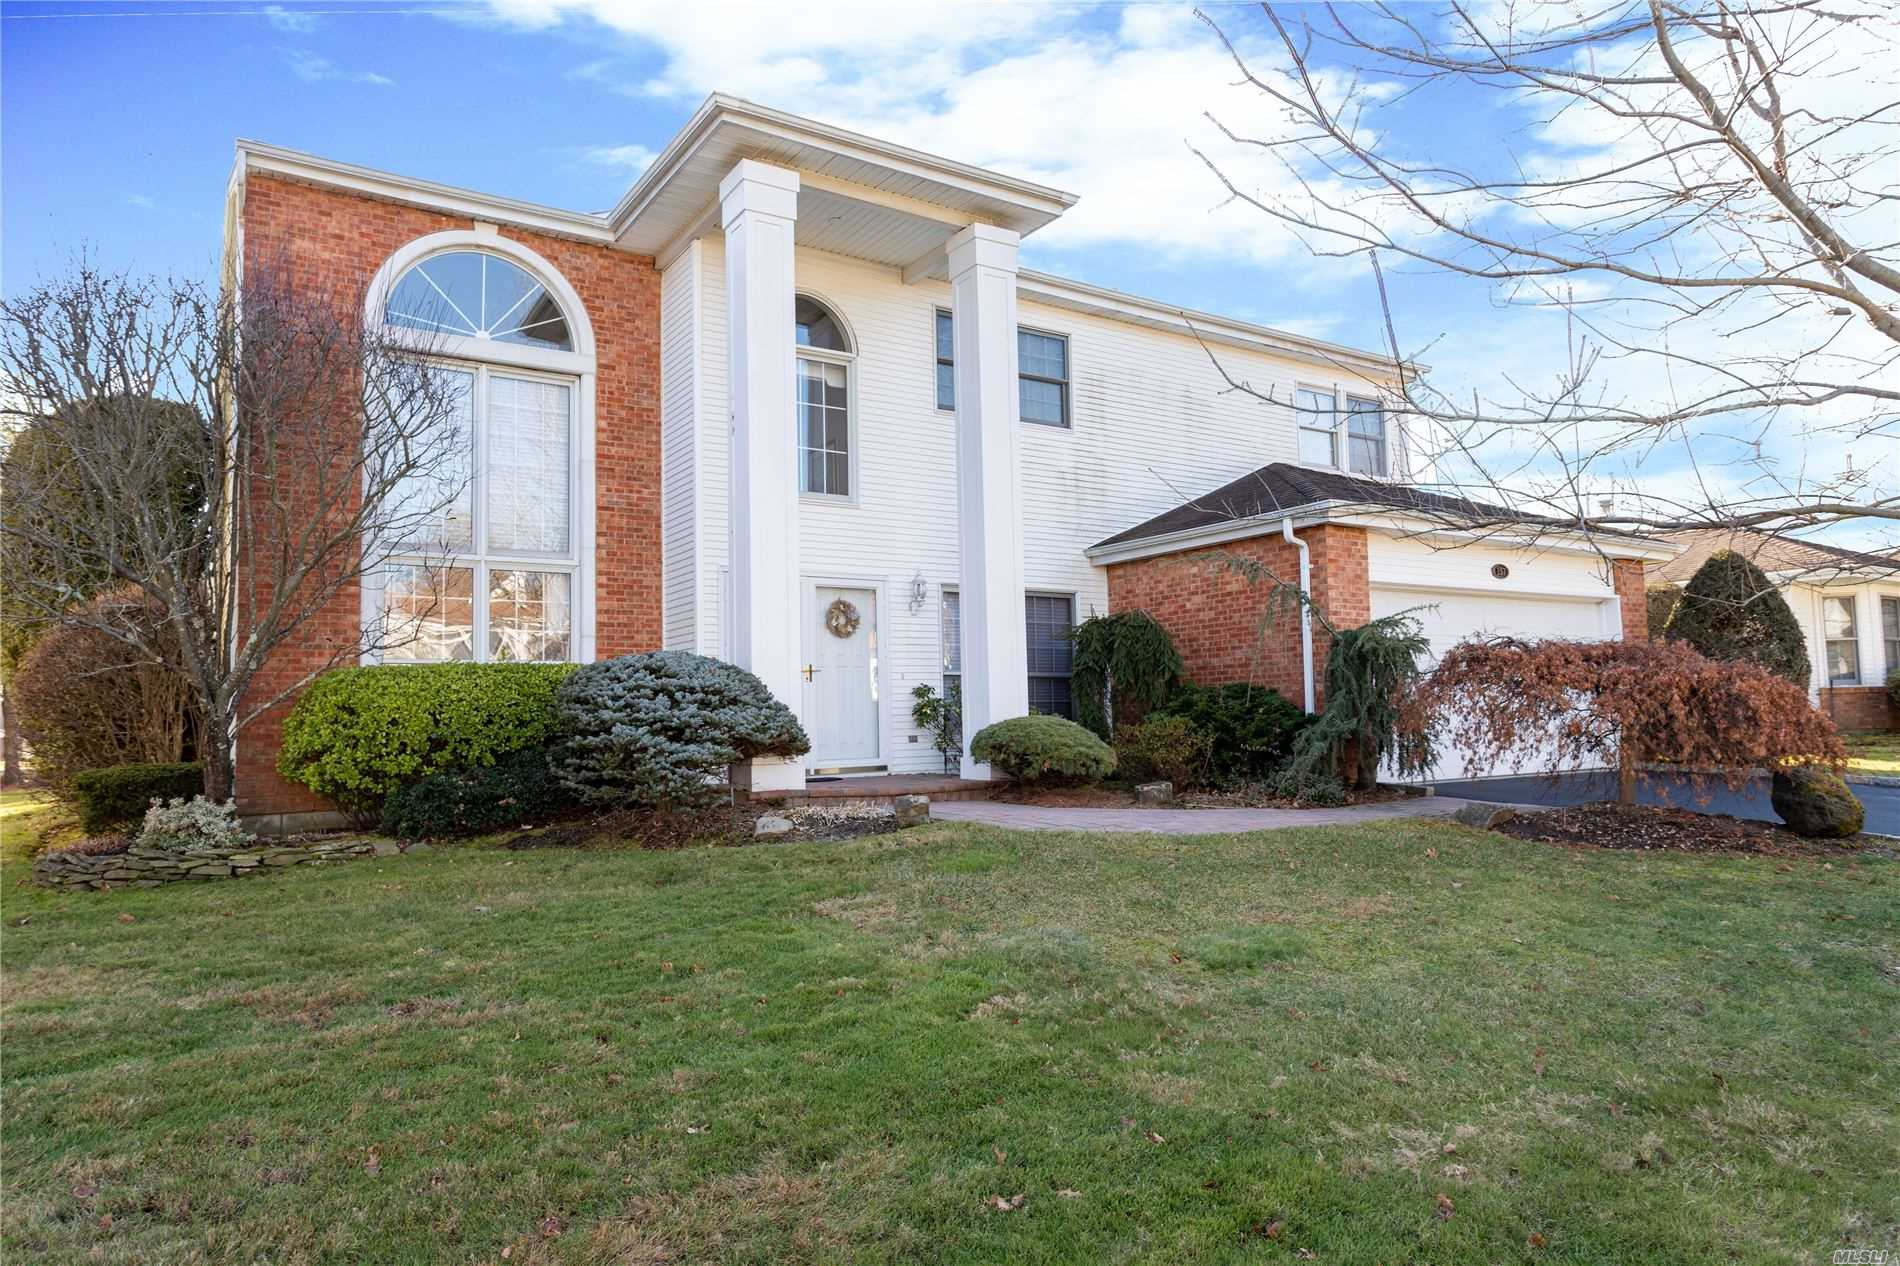 157 Country Club Dr - Commack, New York